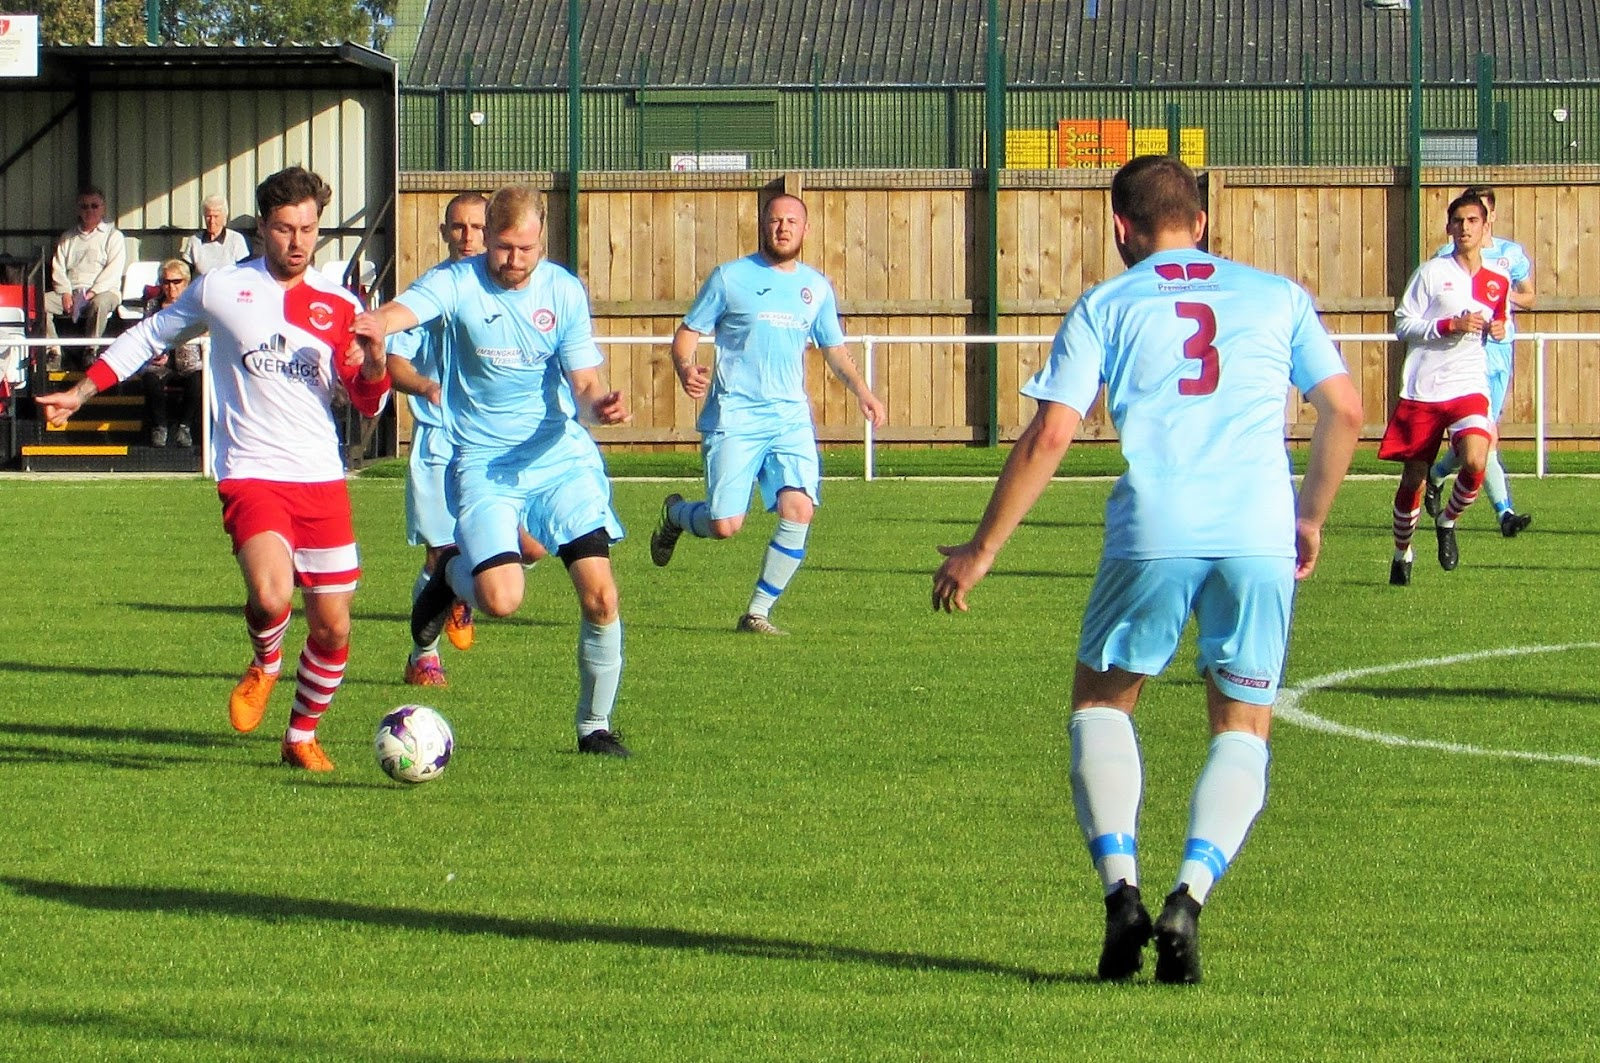 Rasen Jansen The66pow Skegness Town 2 V Immingham Town 1 Lincs League